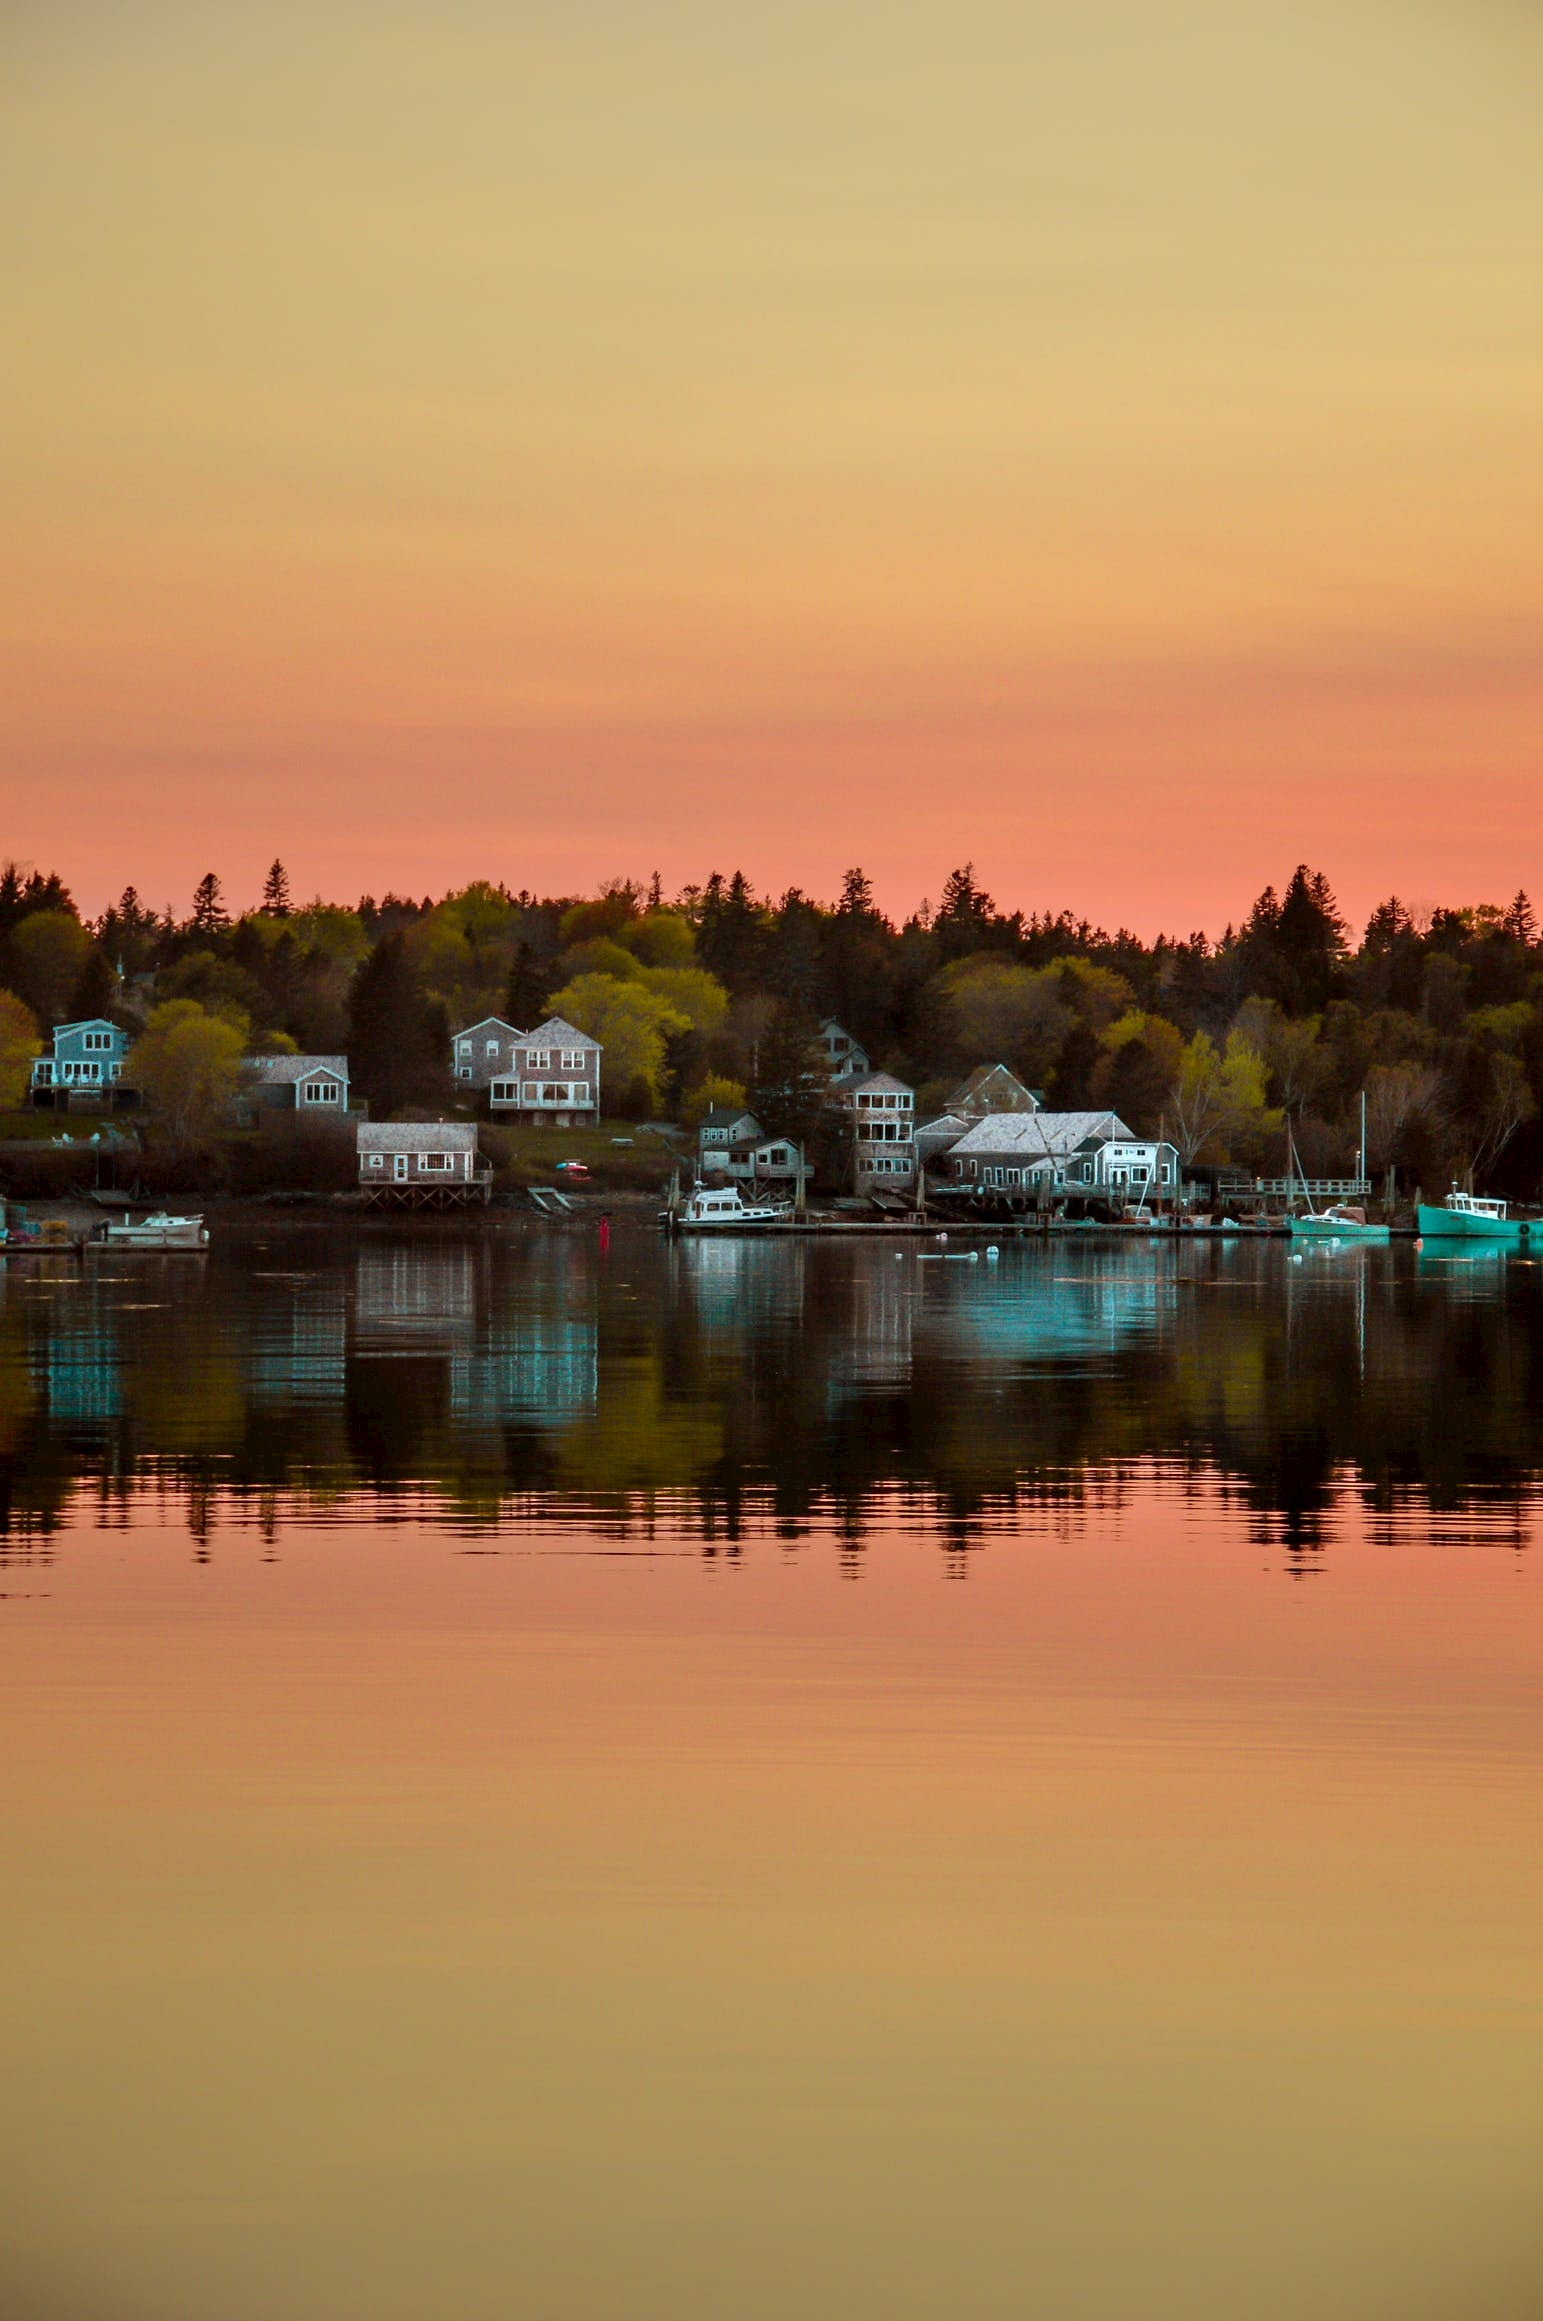 Sunset reflects upon water on island in Maine with cluster of waterfront houses.